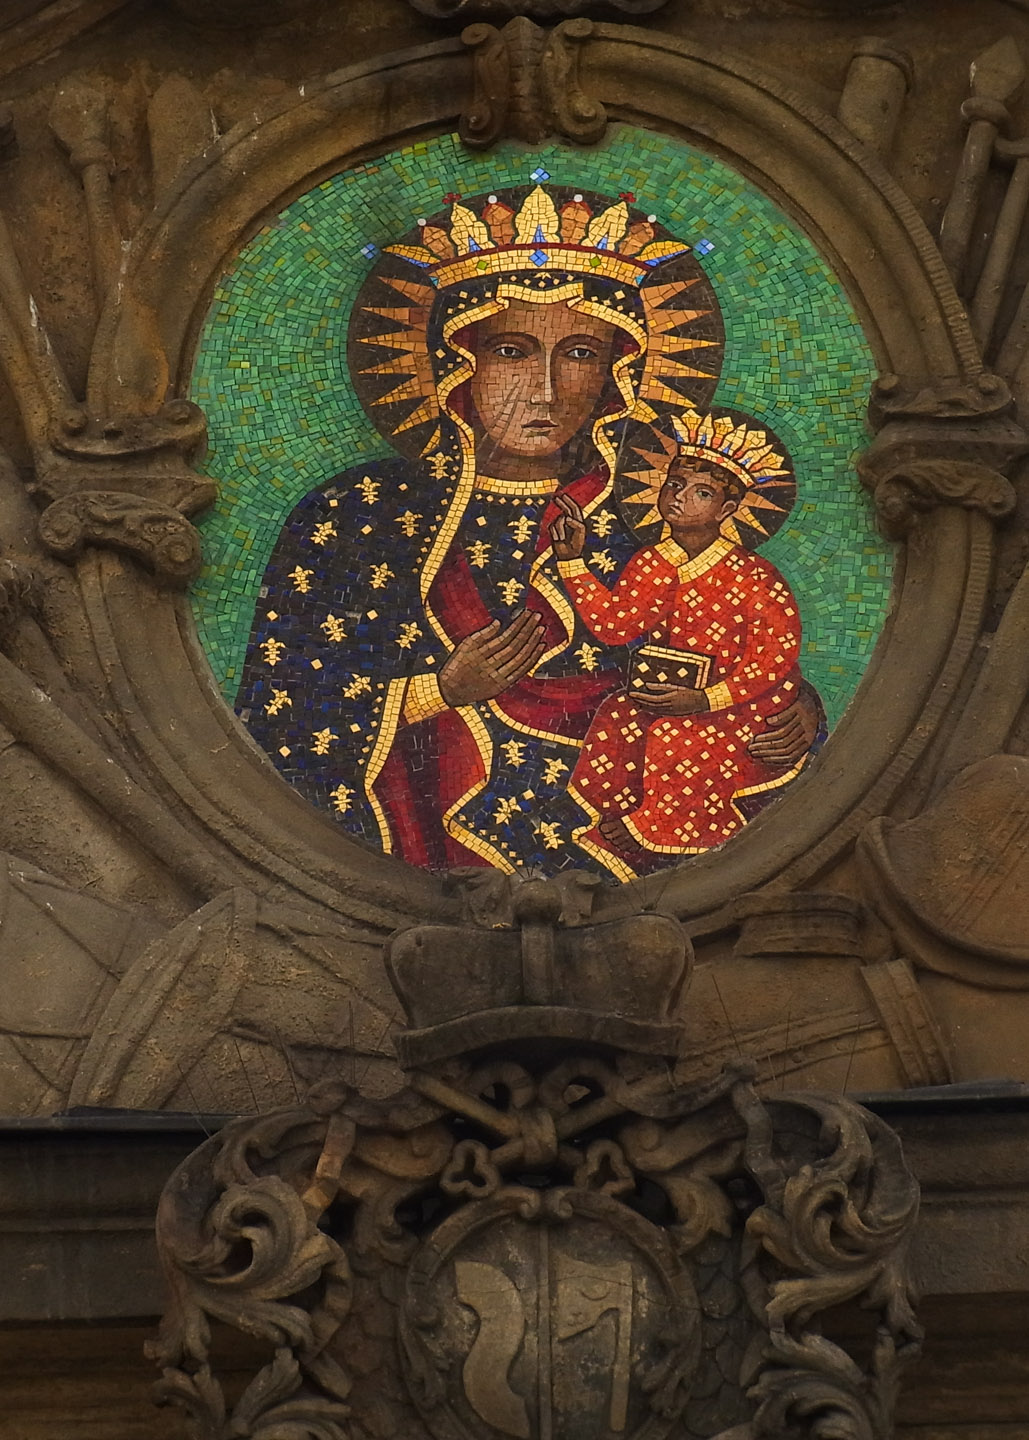 Mosaic of the Black Madonna, Poland's holiest icon